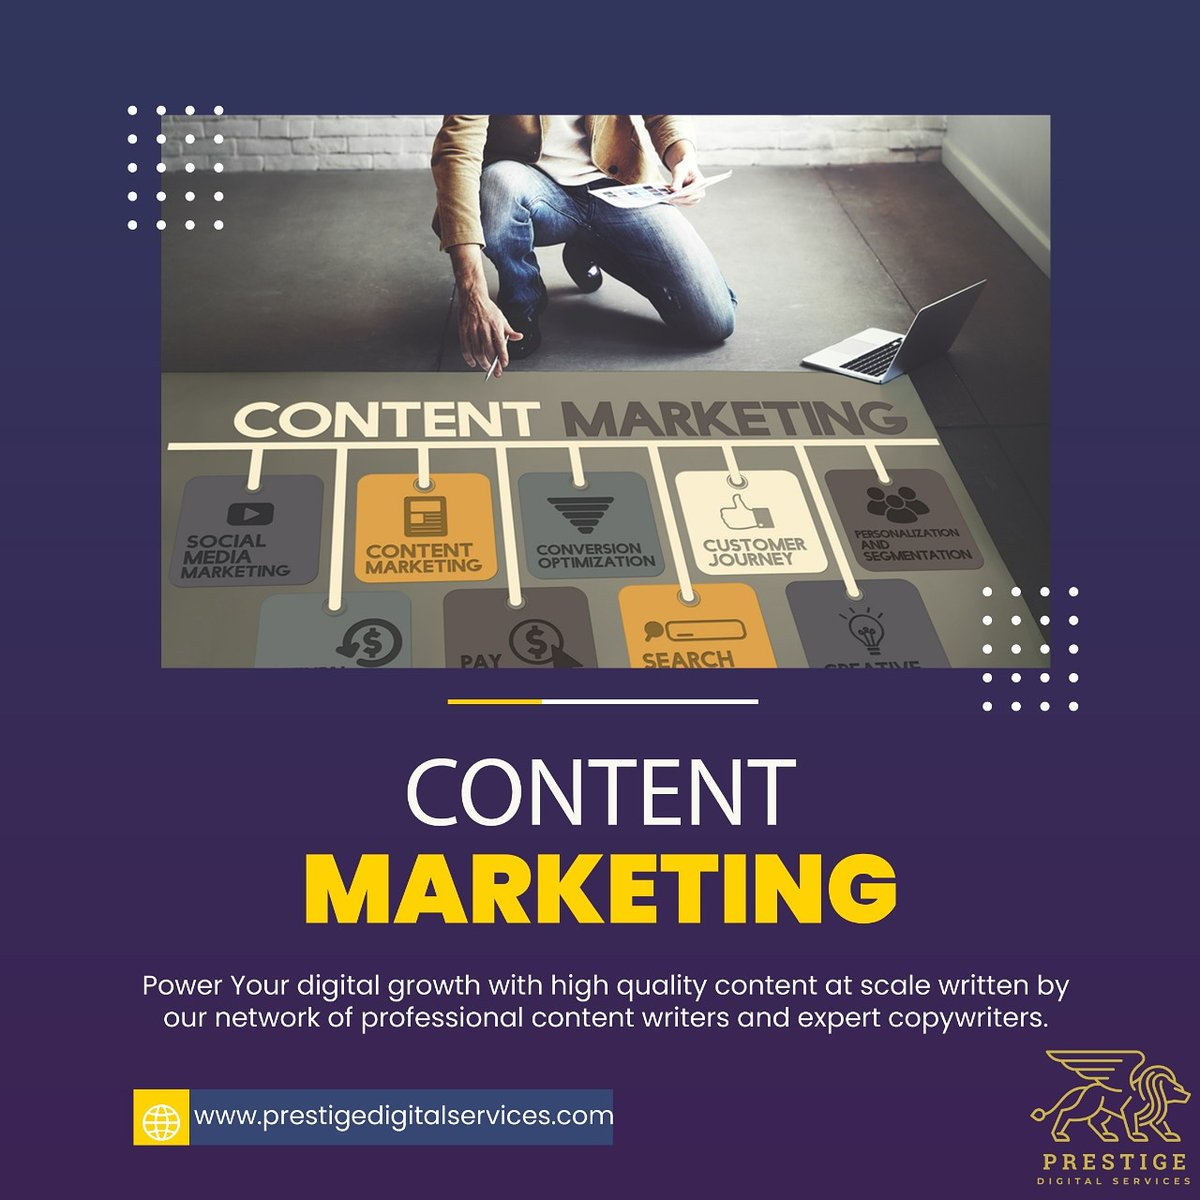 With our content marketing service packages, our team develops, writes, edits, and promotes custom content for your business. From blog posts to online guides to videos, you can do it all with Prestige Digital Services. #digitalservices #contentmarketing #digitalmarketingagency